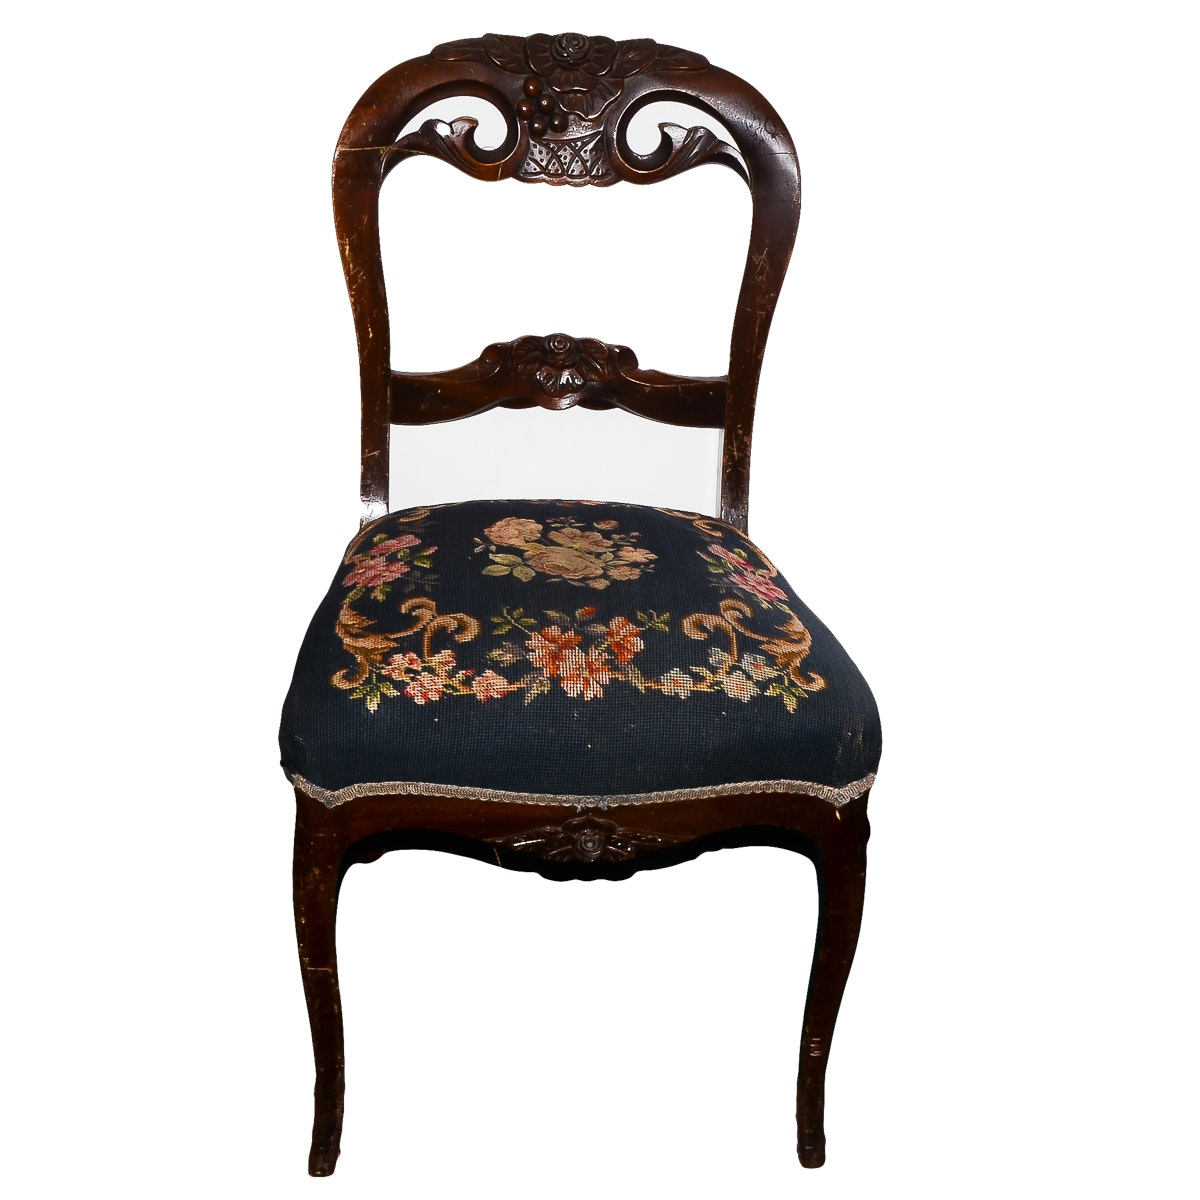 Antique Victorian Rococo Revival Side Chair